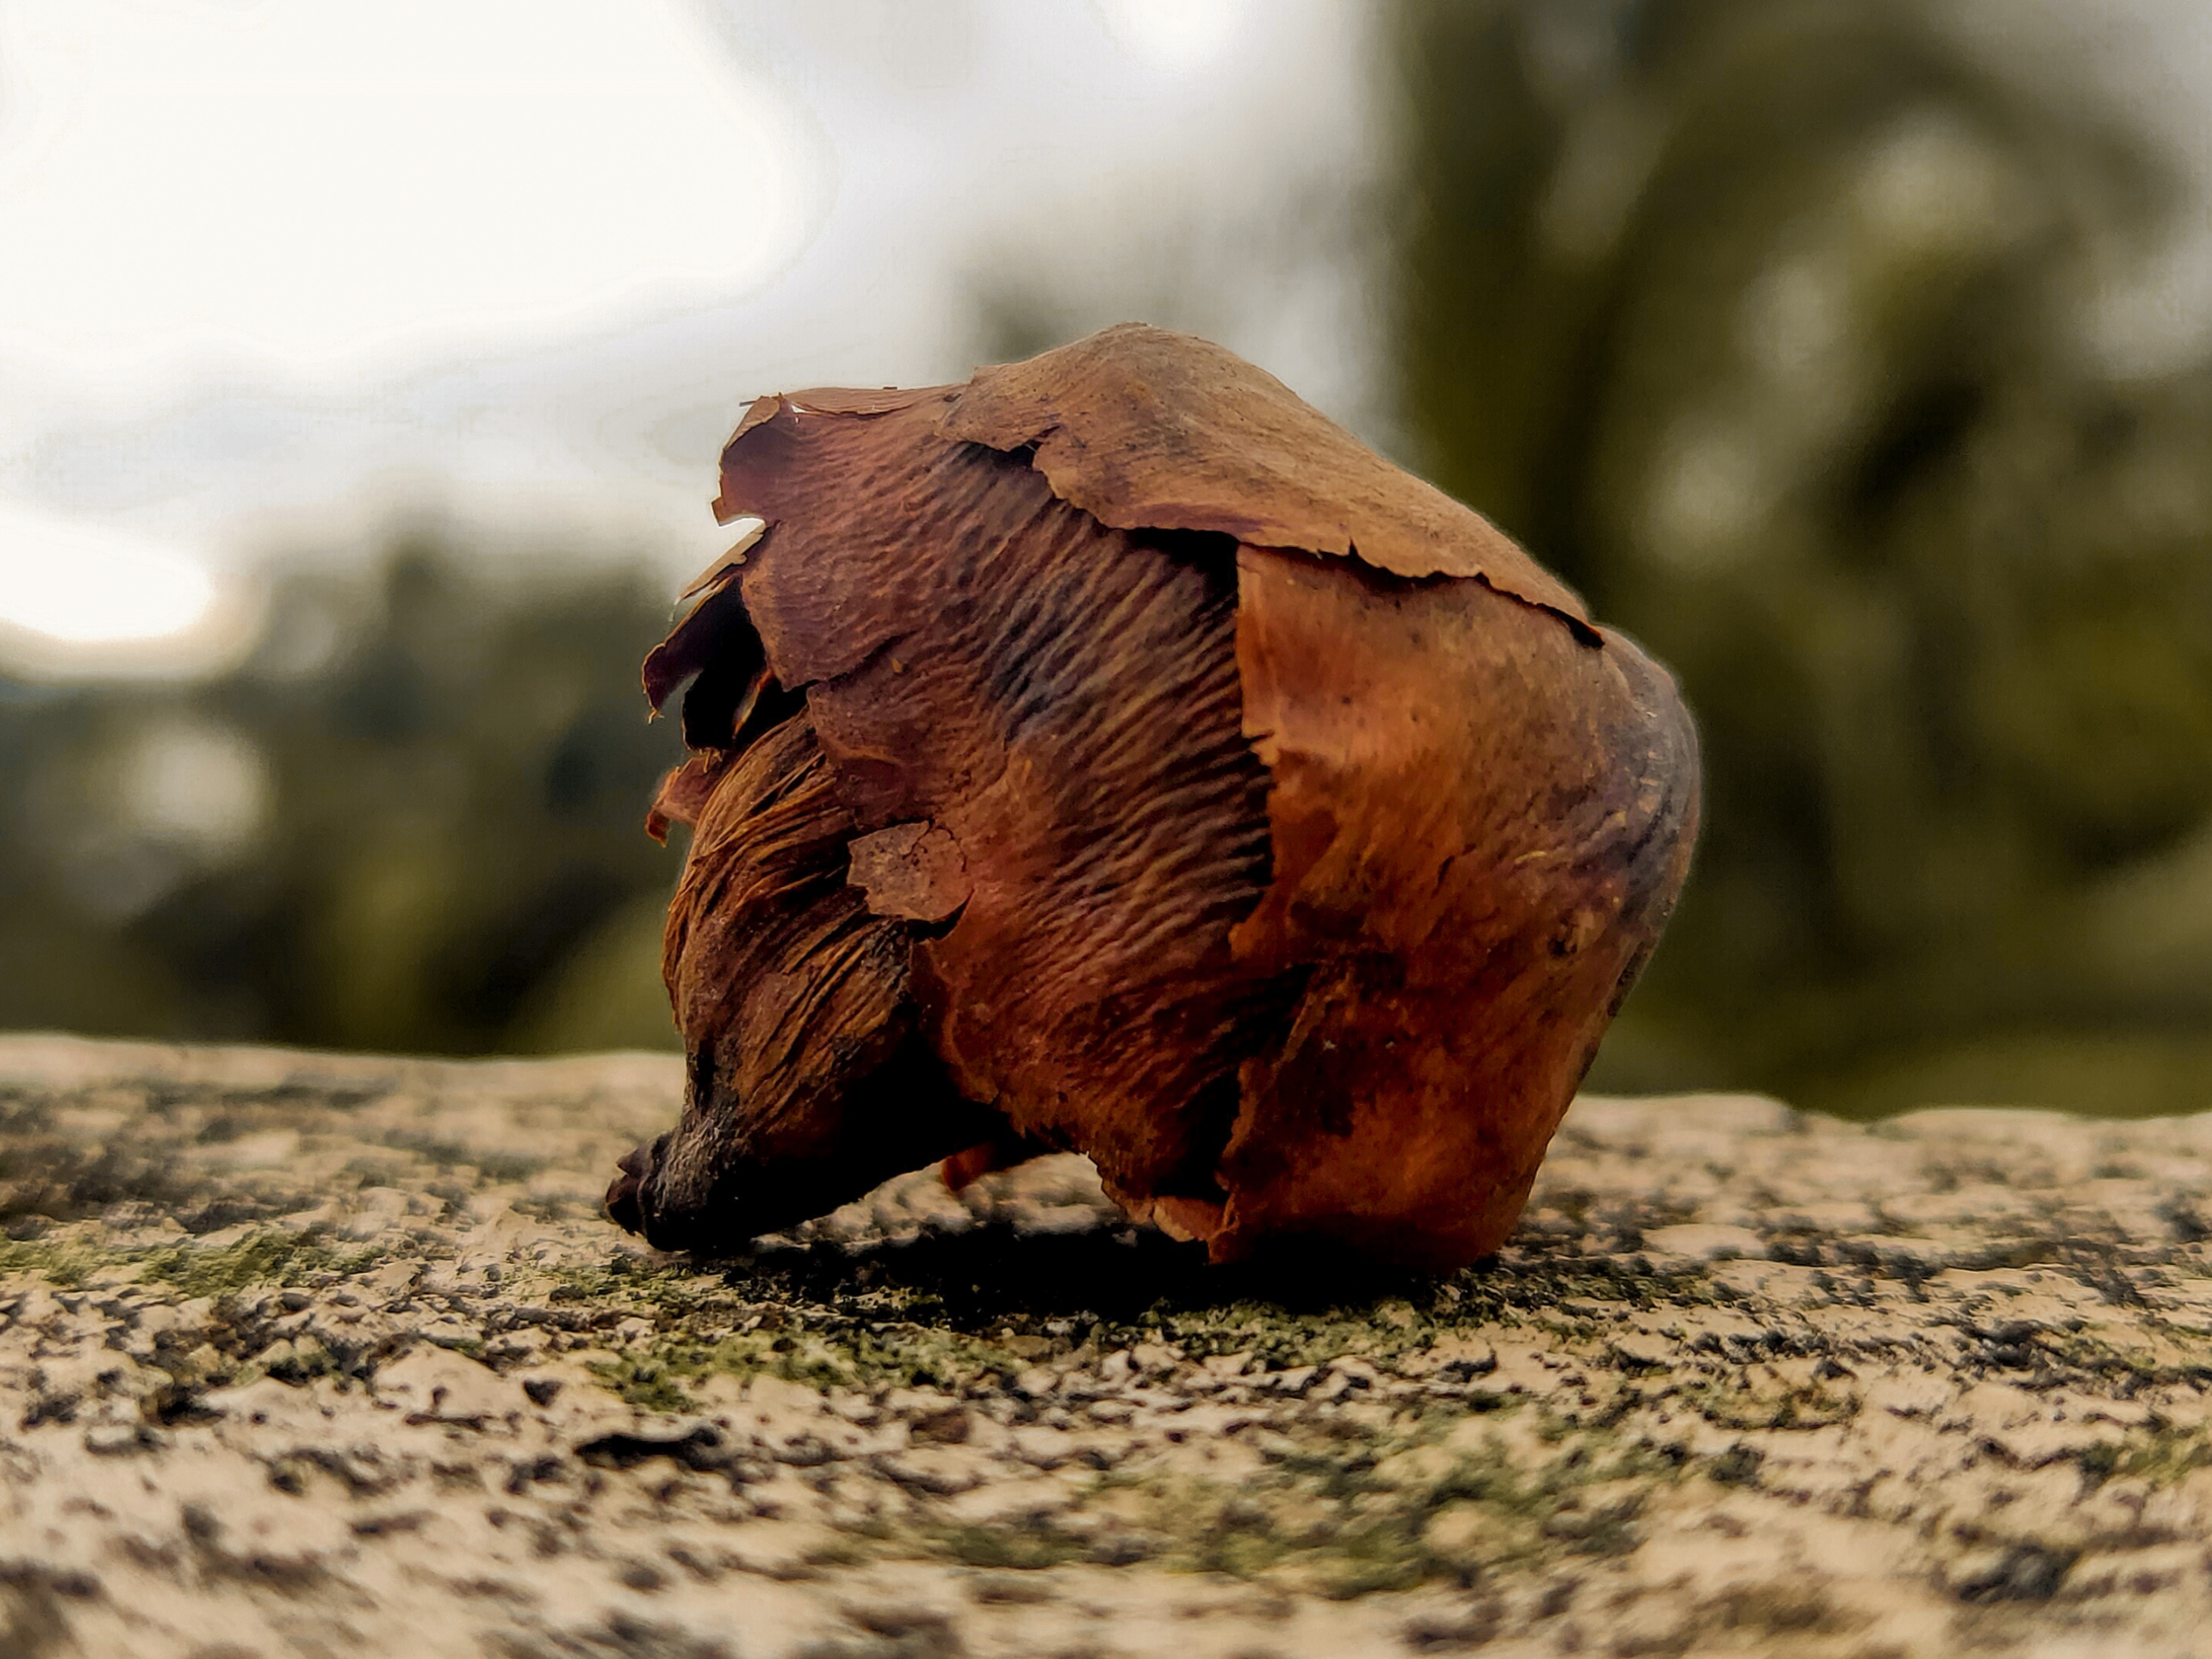 A coconut shell